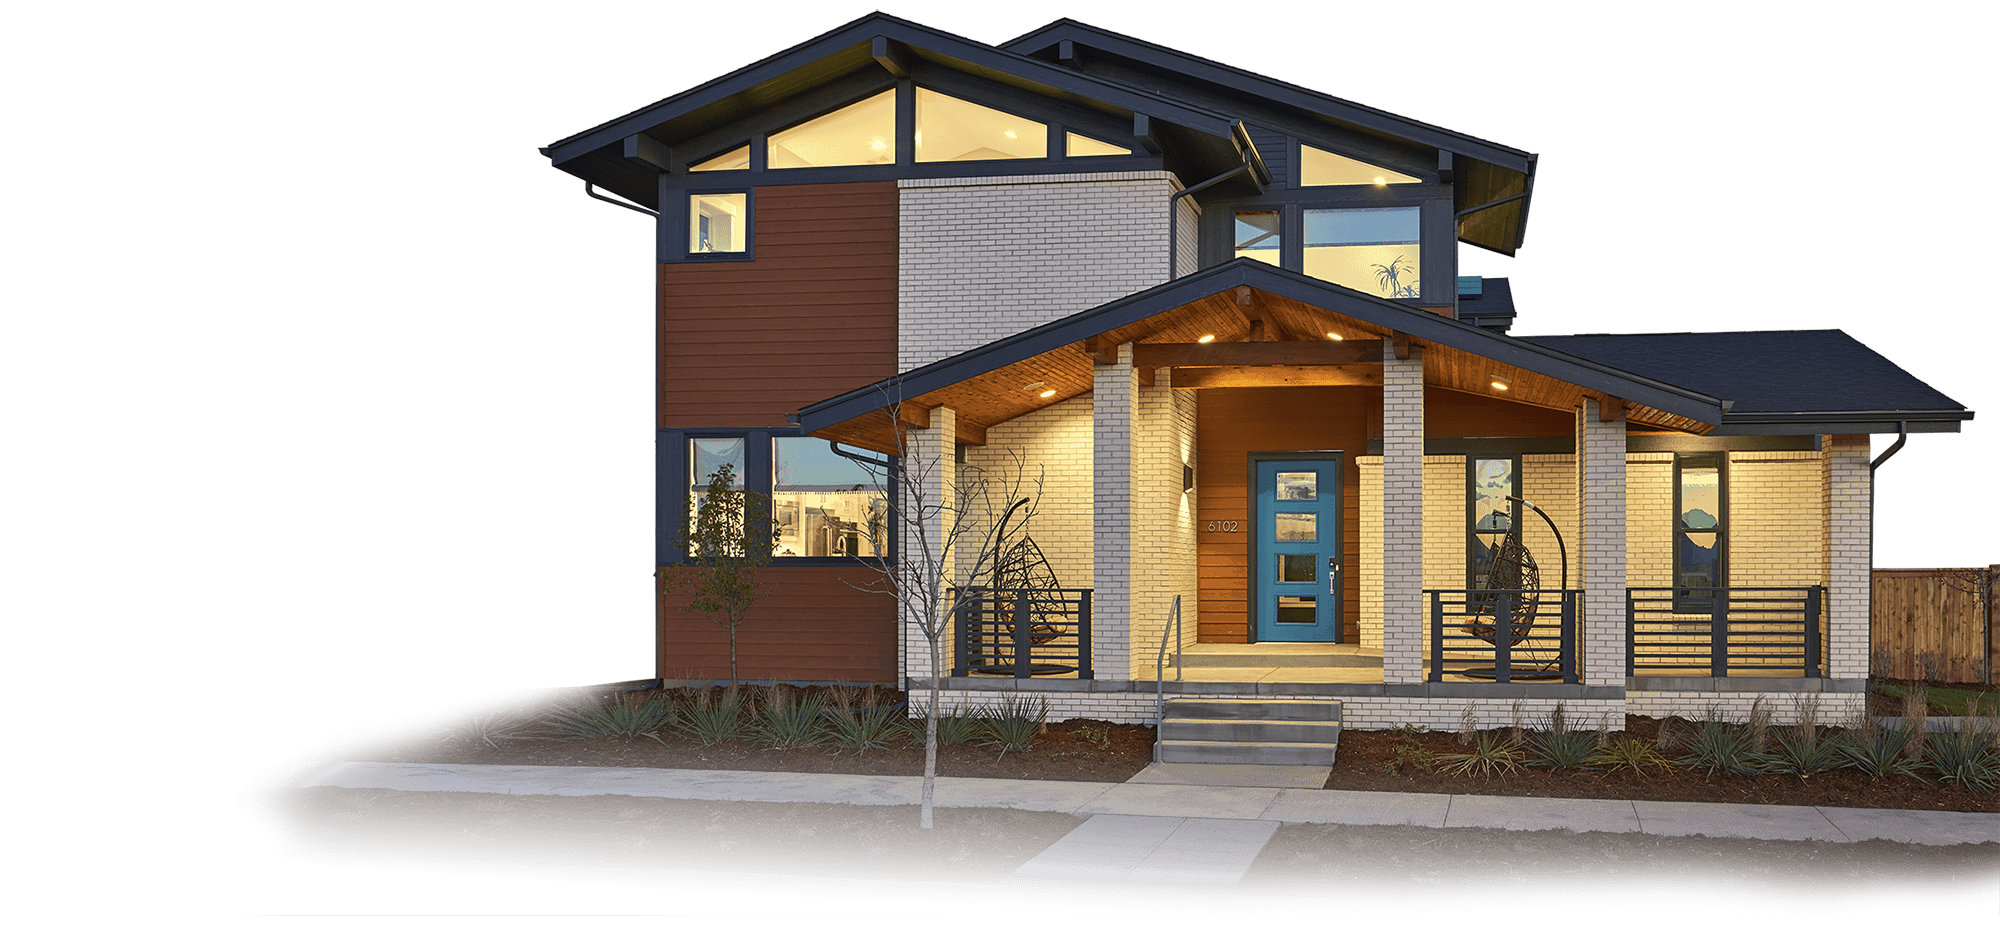 Thrive Home Builders - Home Image